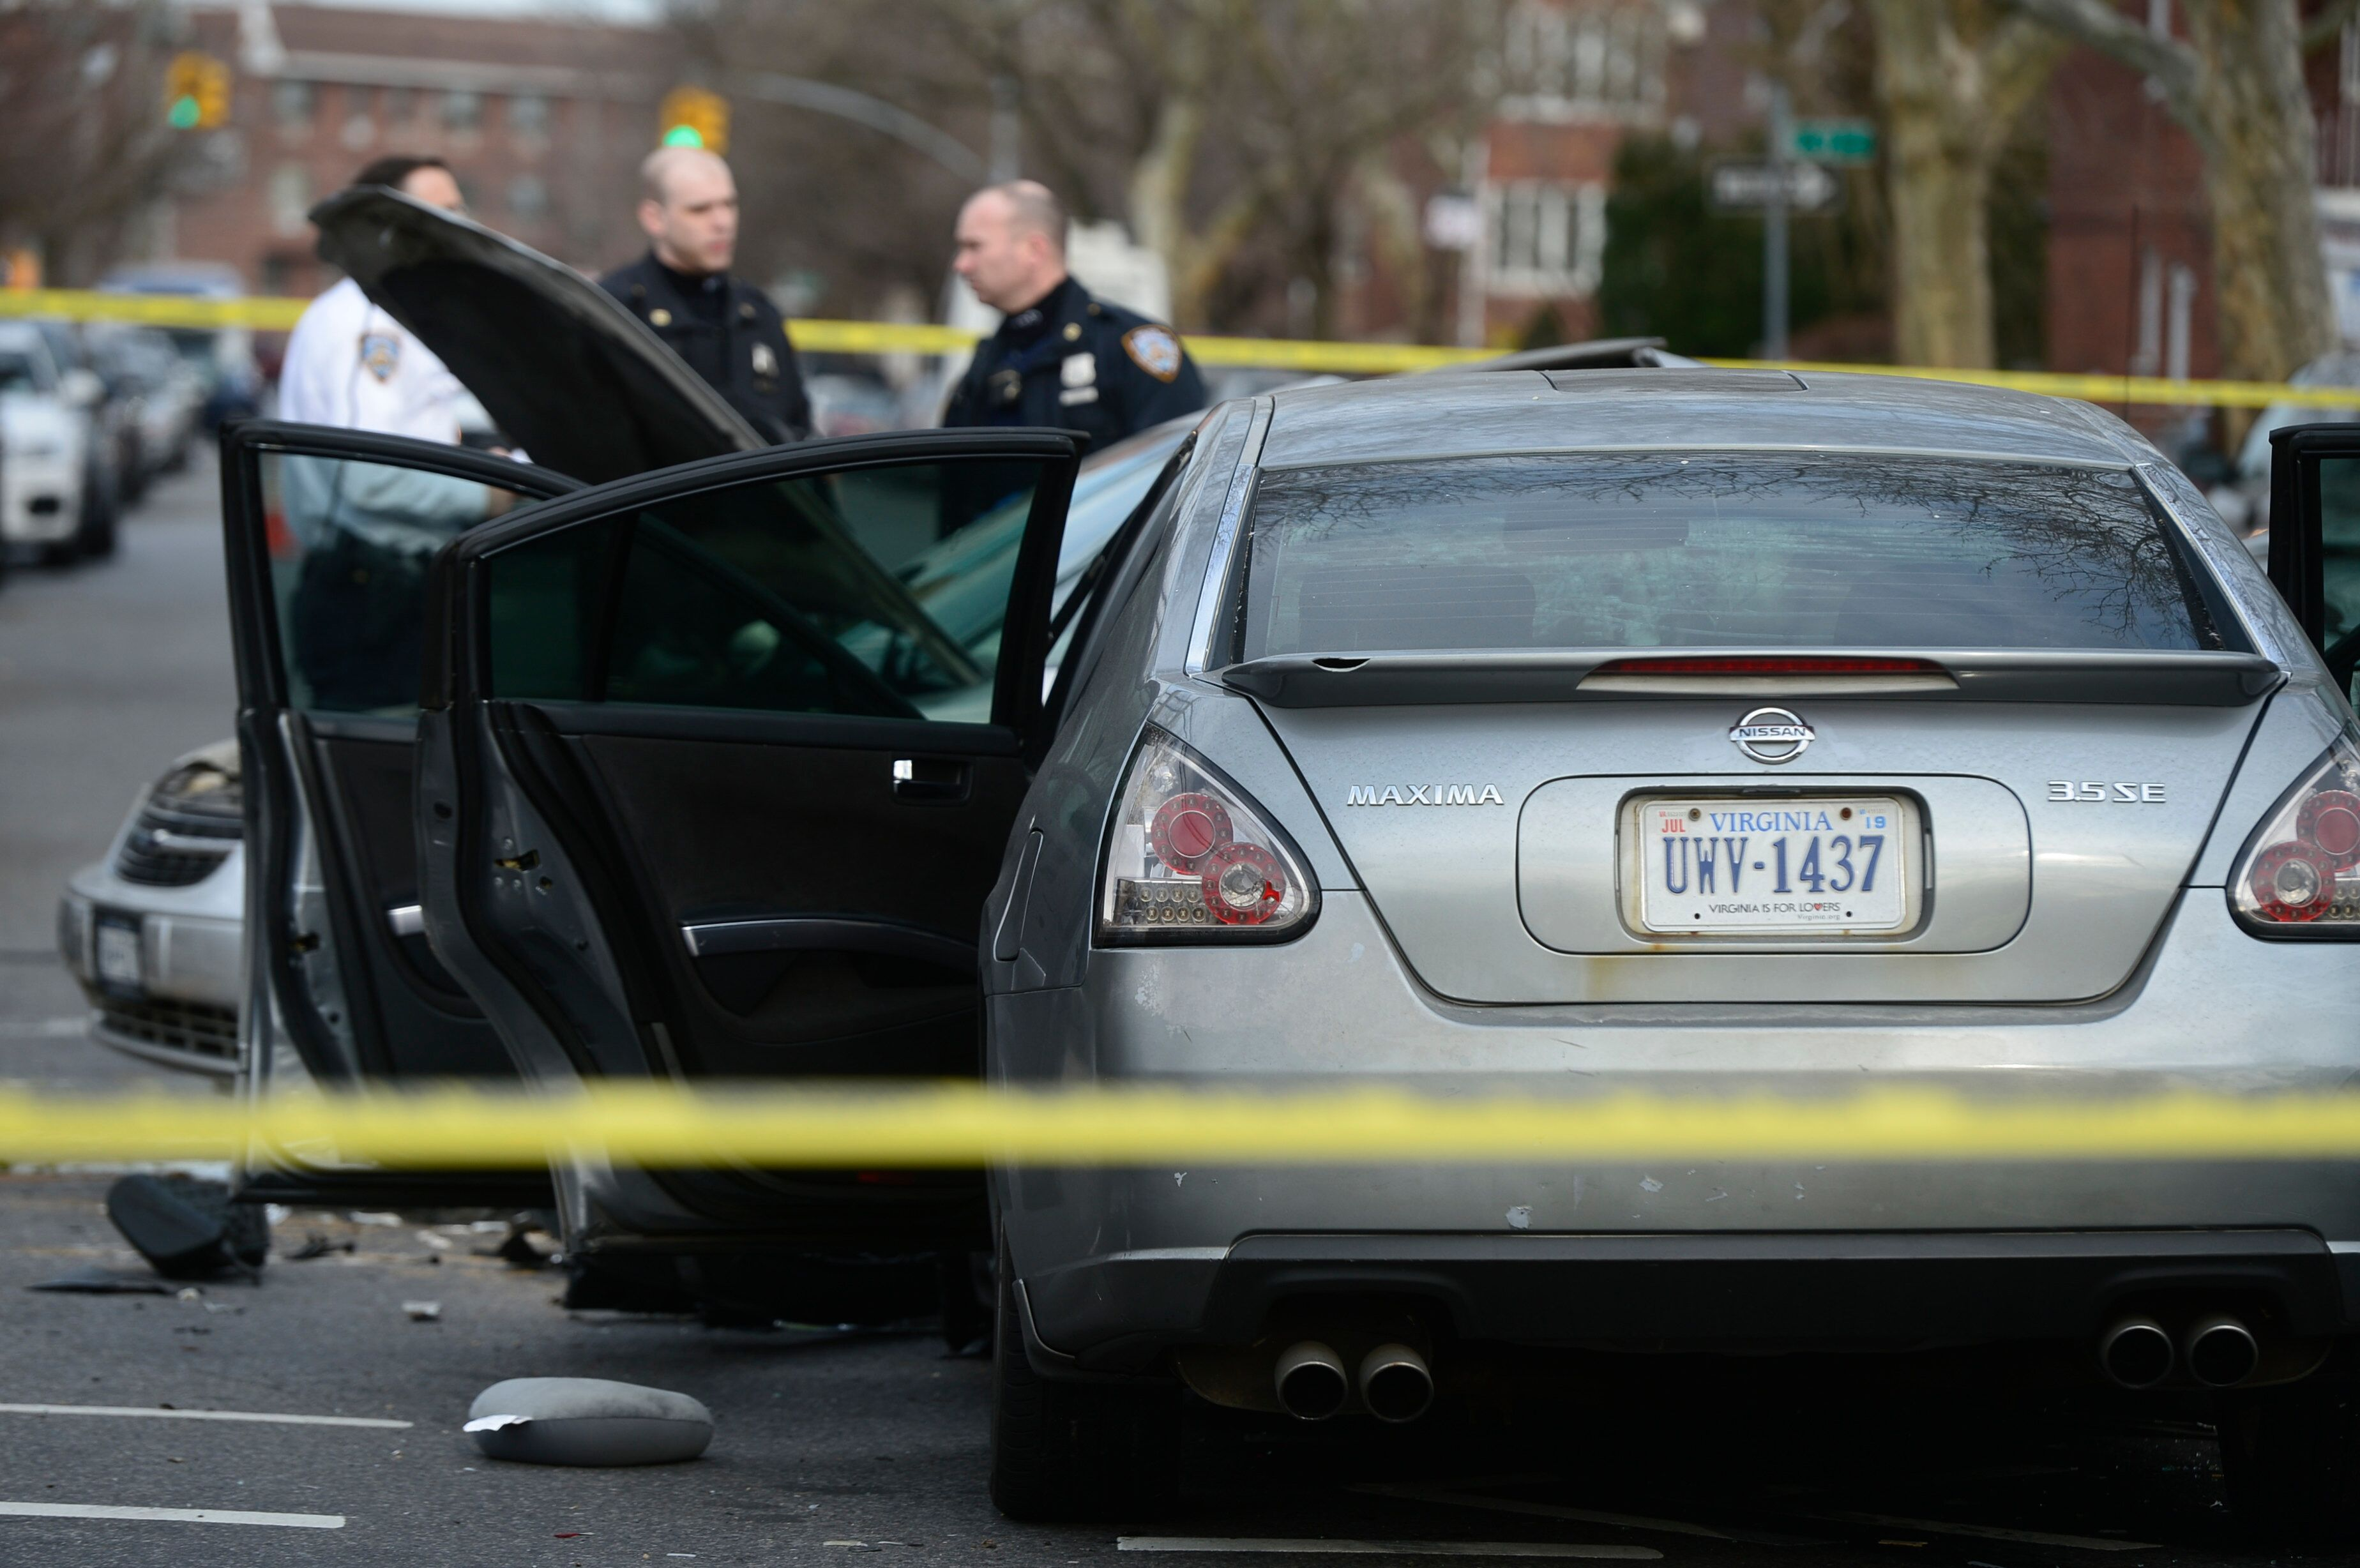 Canarsie Woman Dies In Fatal 3-Car Wreck - BKLYNER